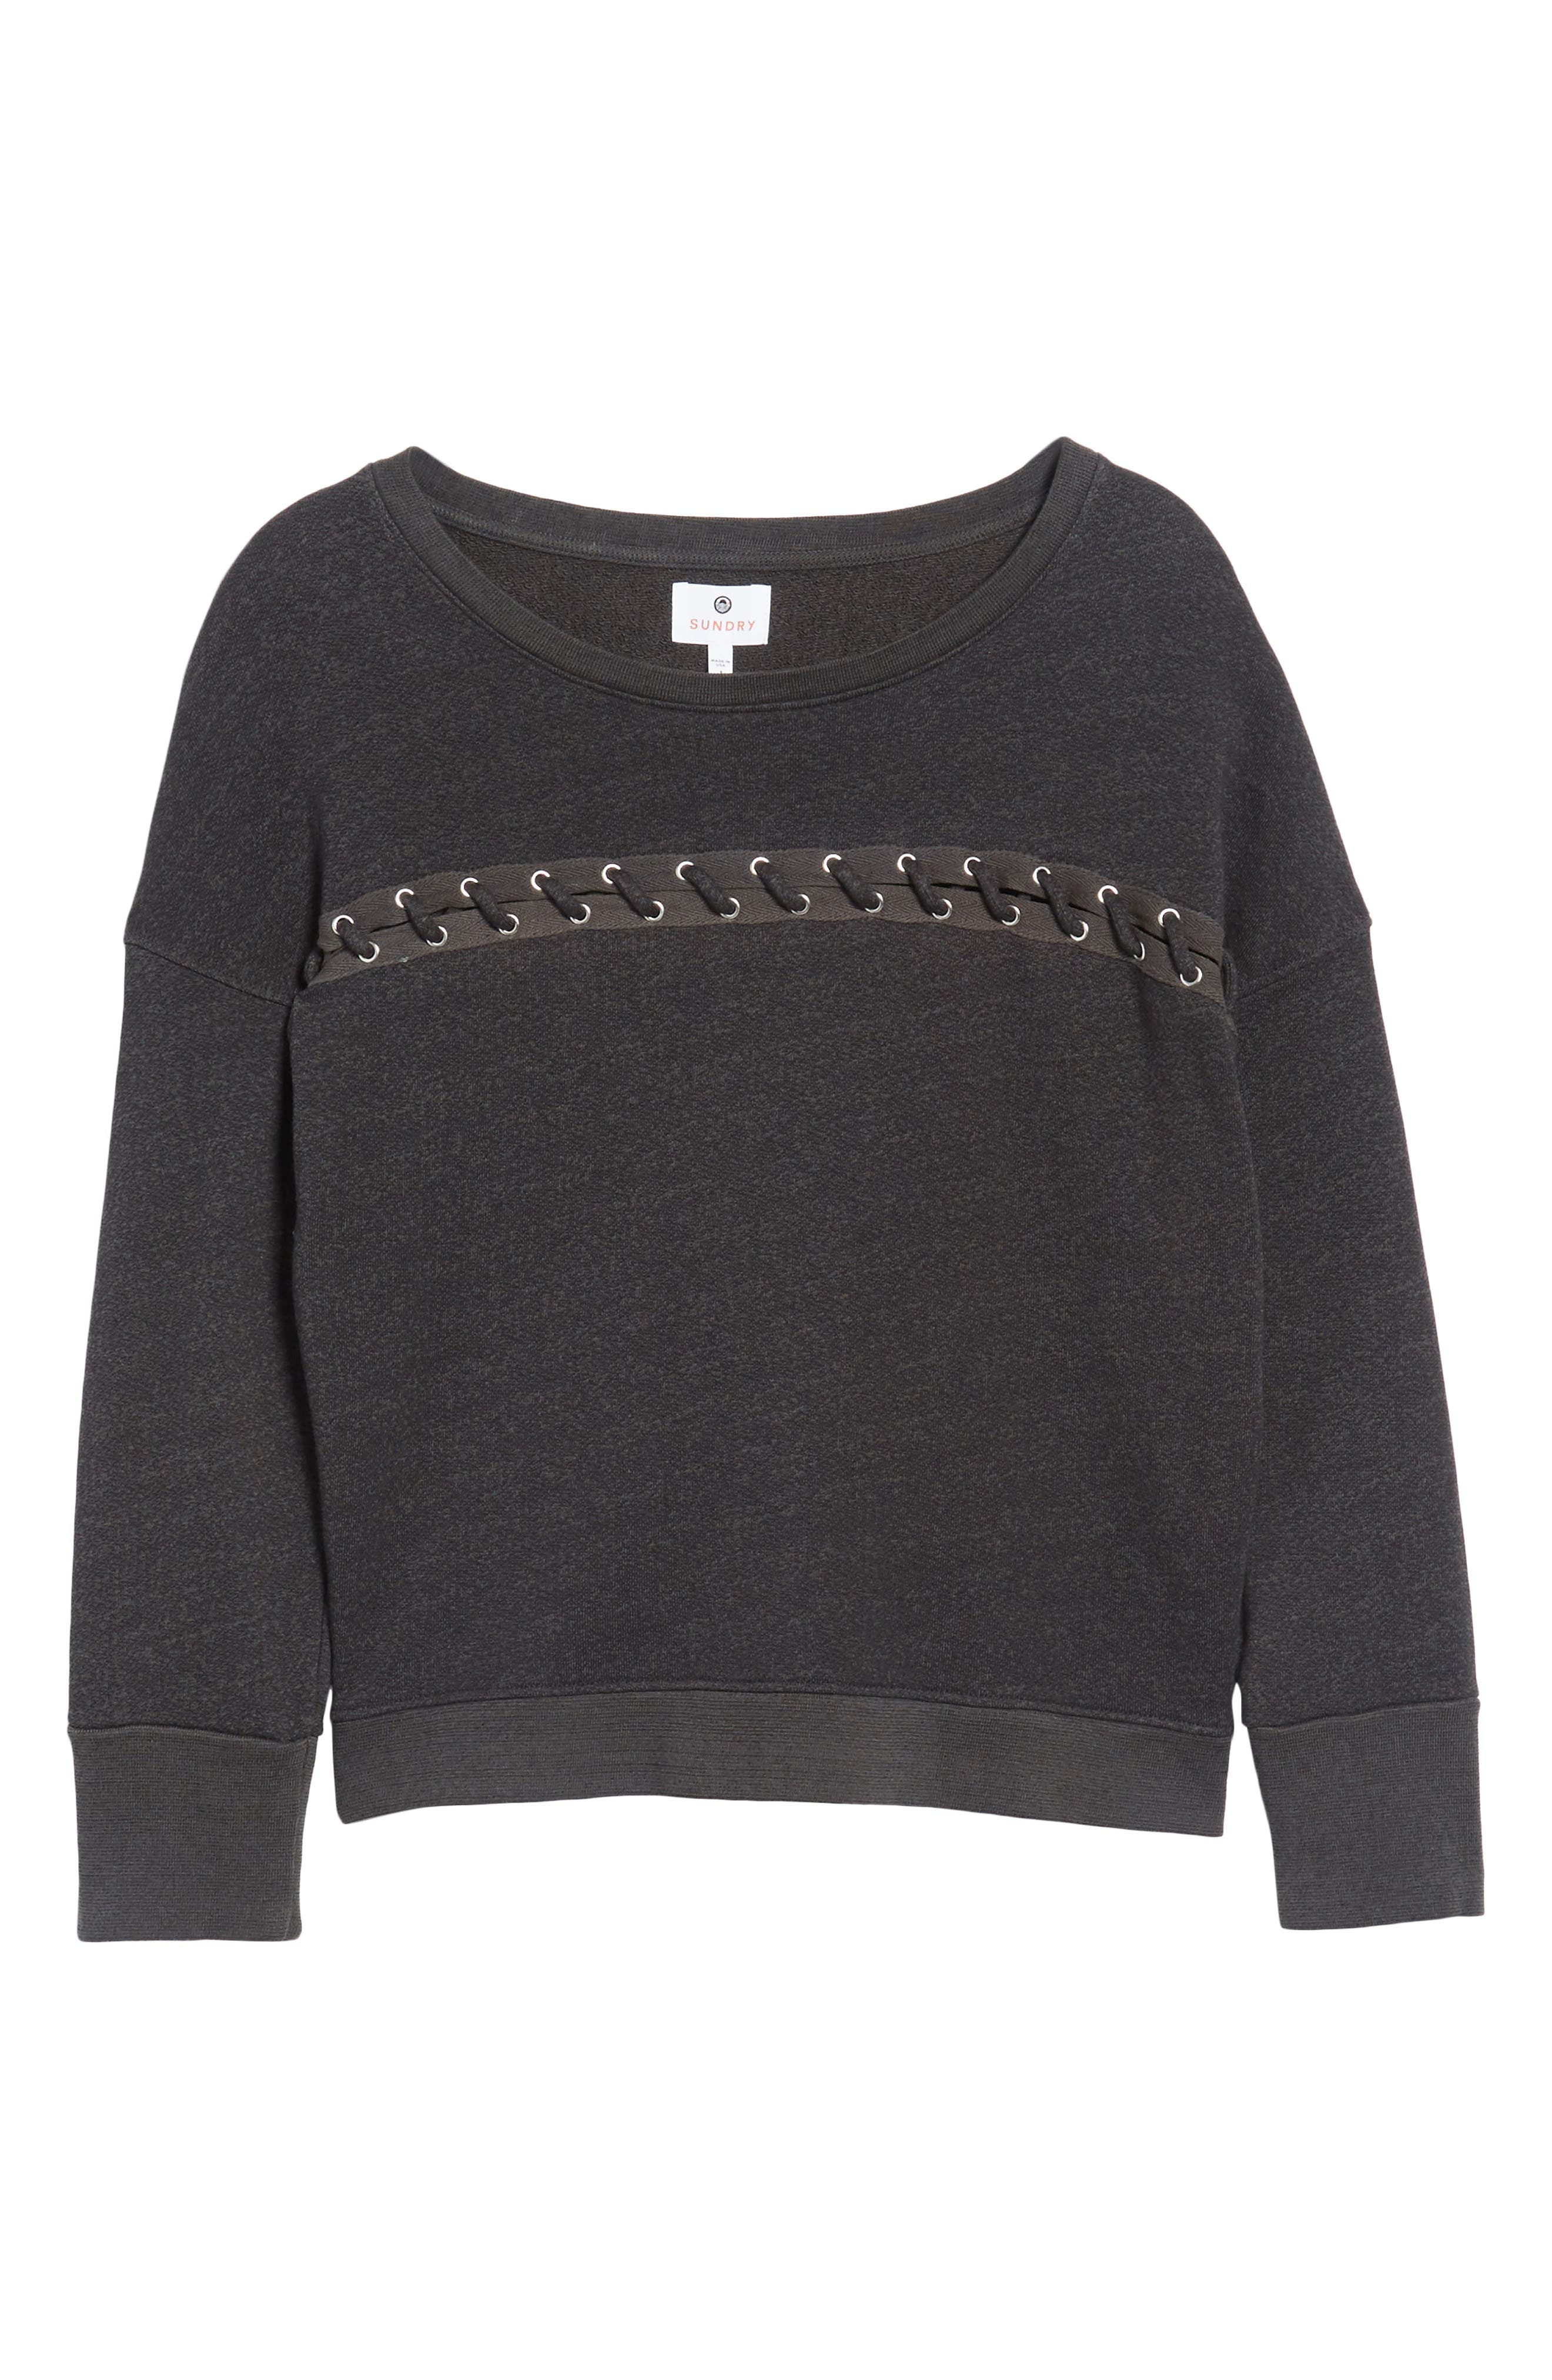 Karma Lace-Up Pullover,                             Alternate thumbnail 6, color,                             001